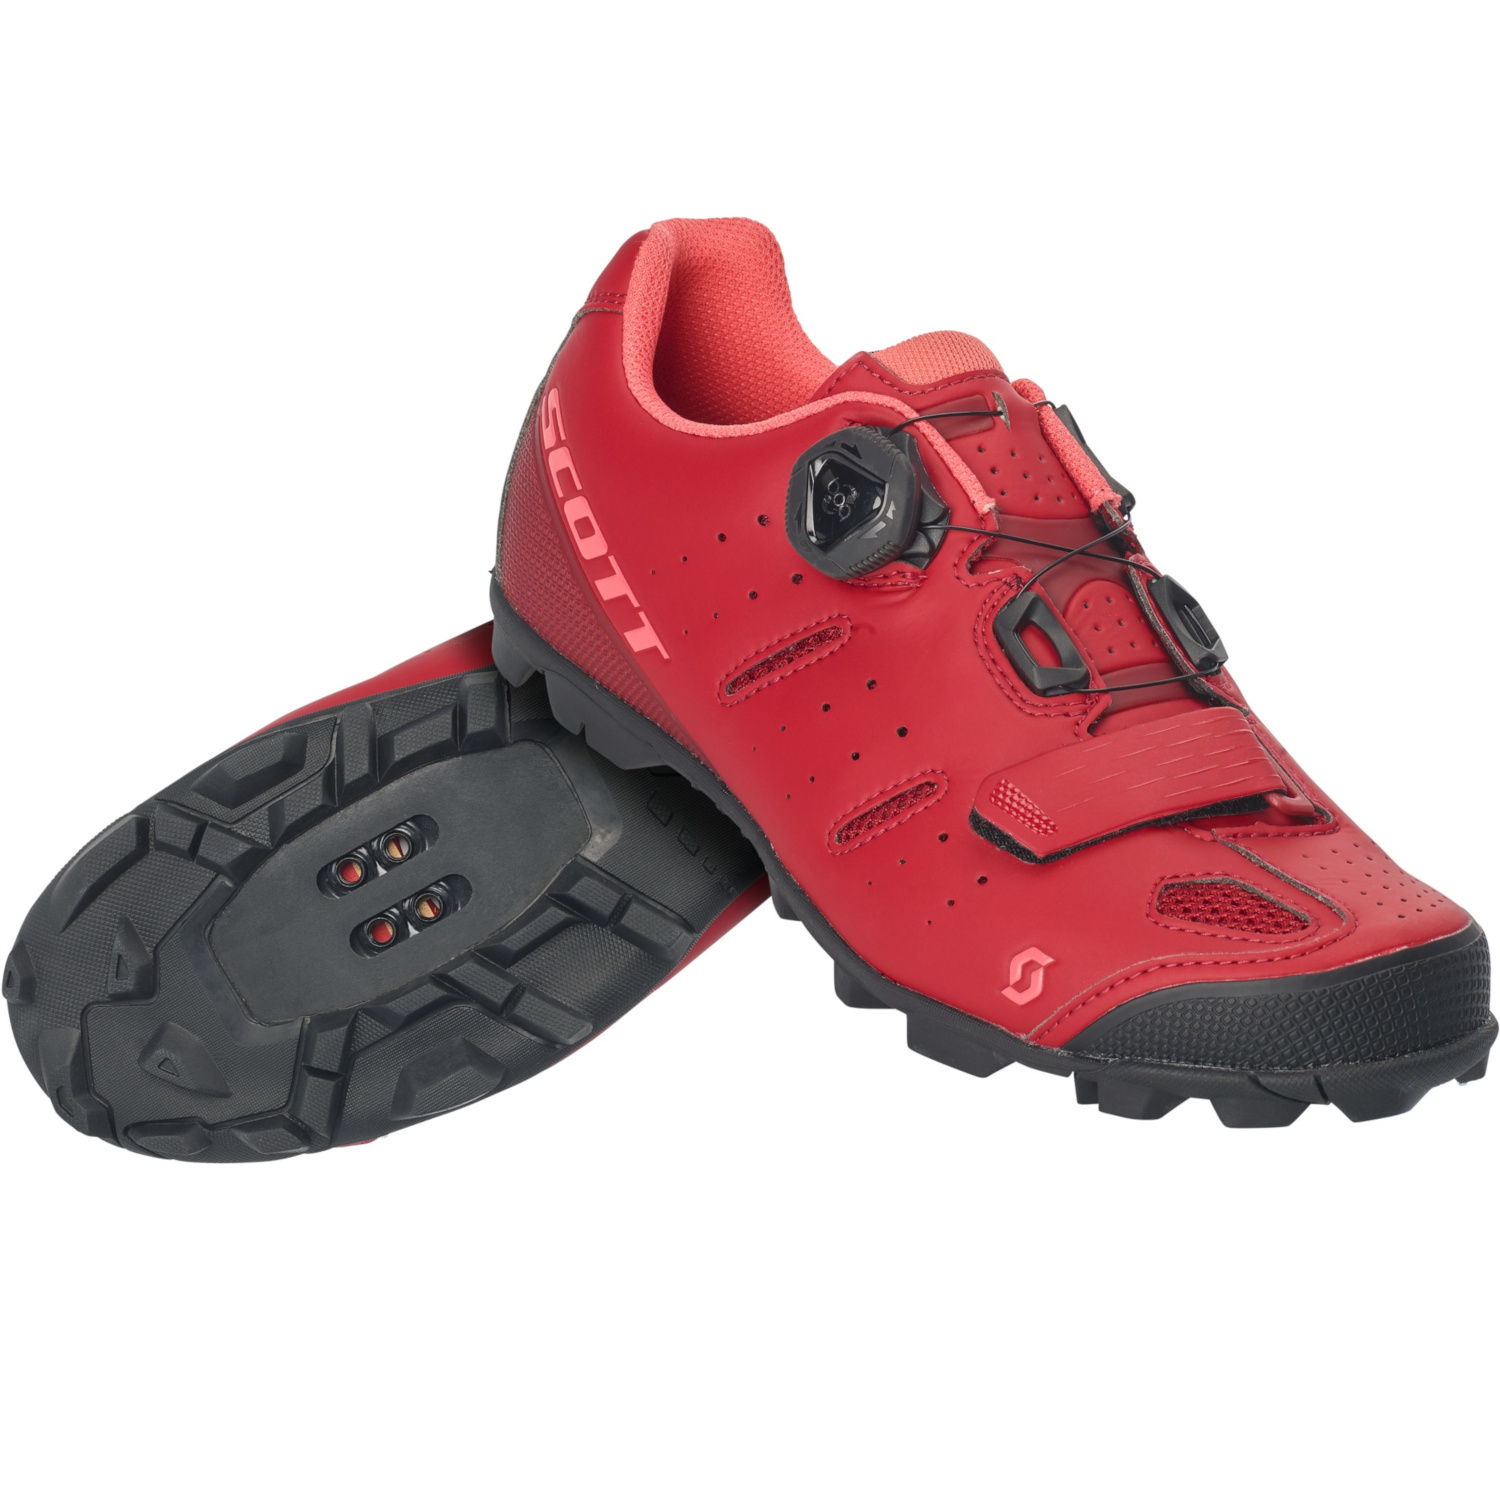 Mtb Schuhe. Cool With Mtb Schuhe. Amazing Mtbschuhe With Mtb